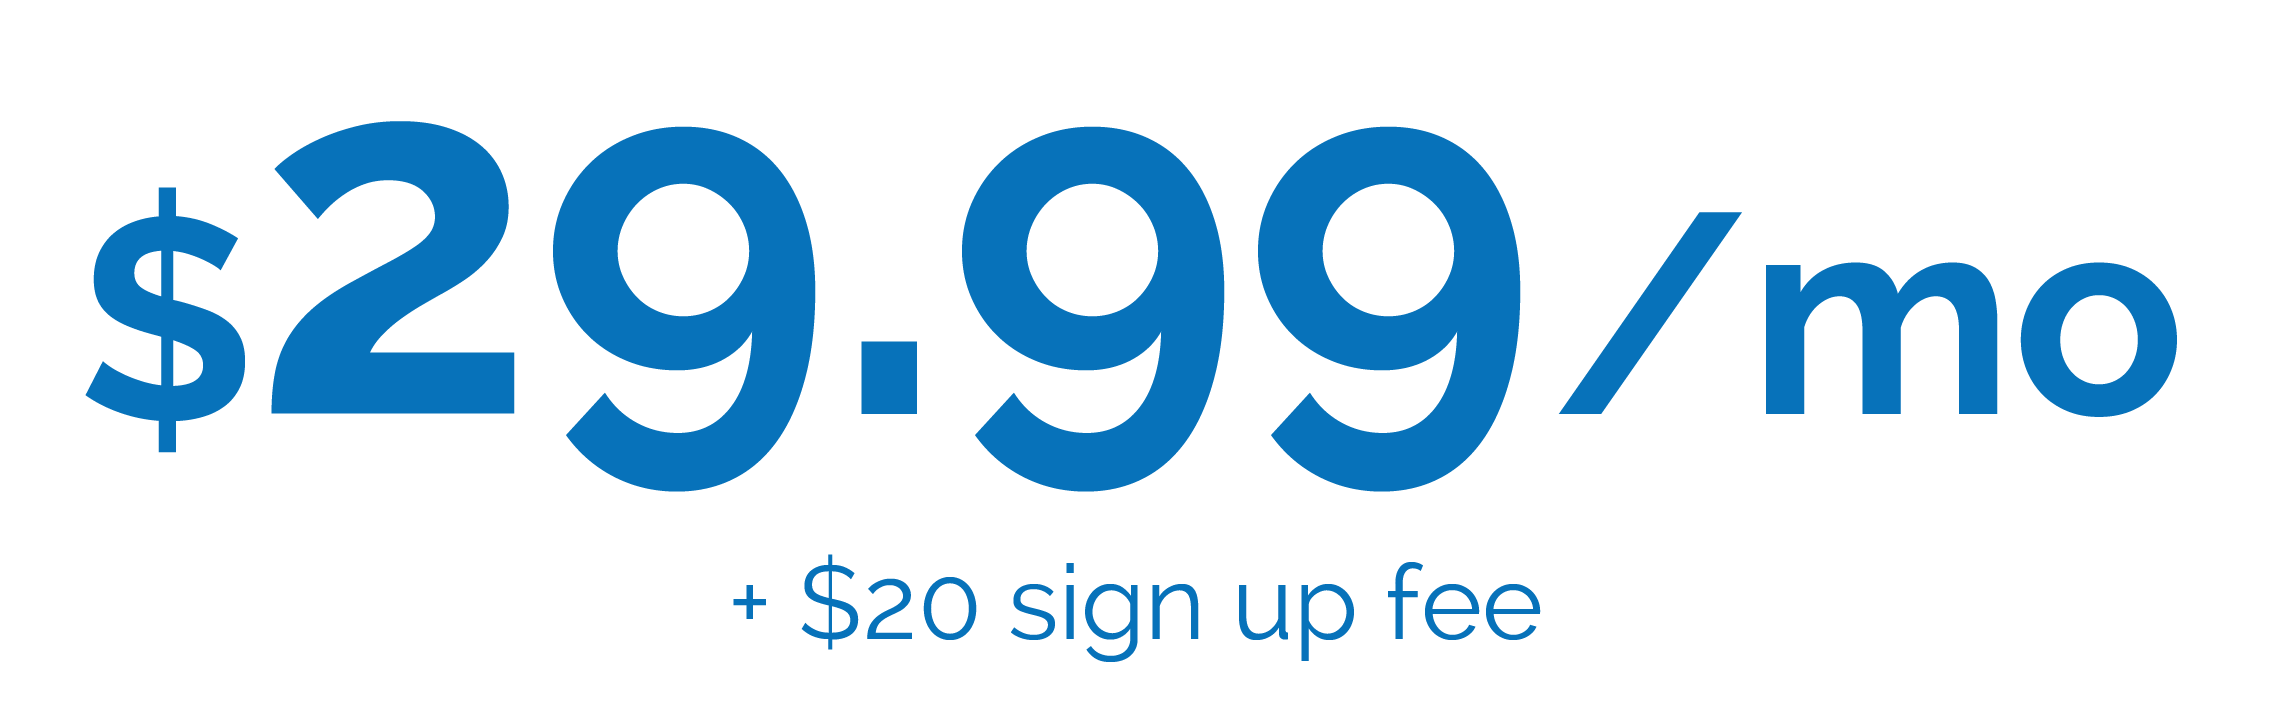 $29.99 per month plus $20 sign up fee caption for membership price